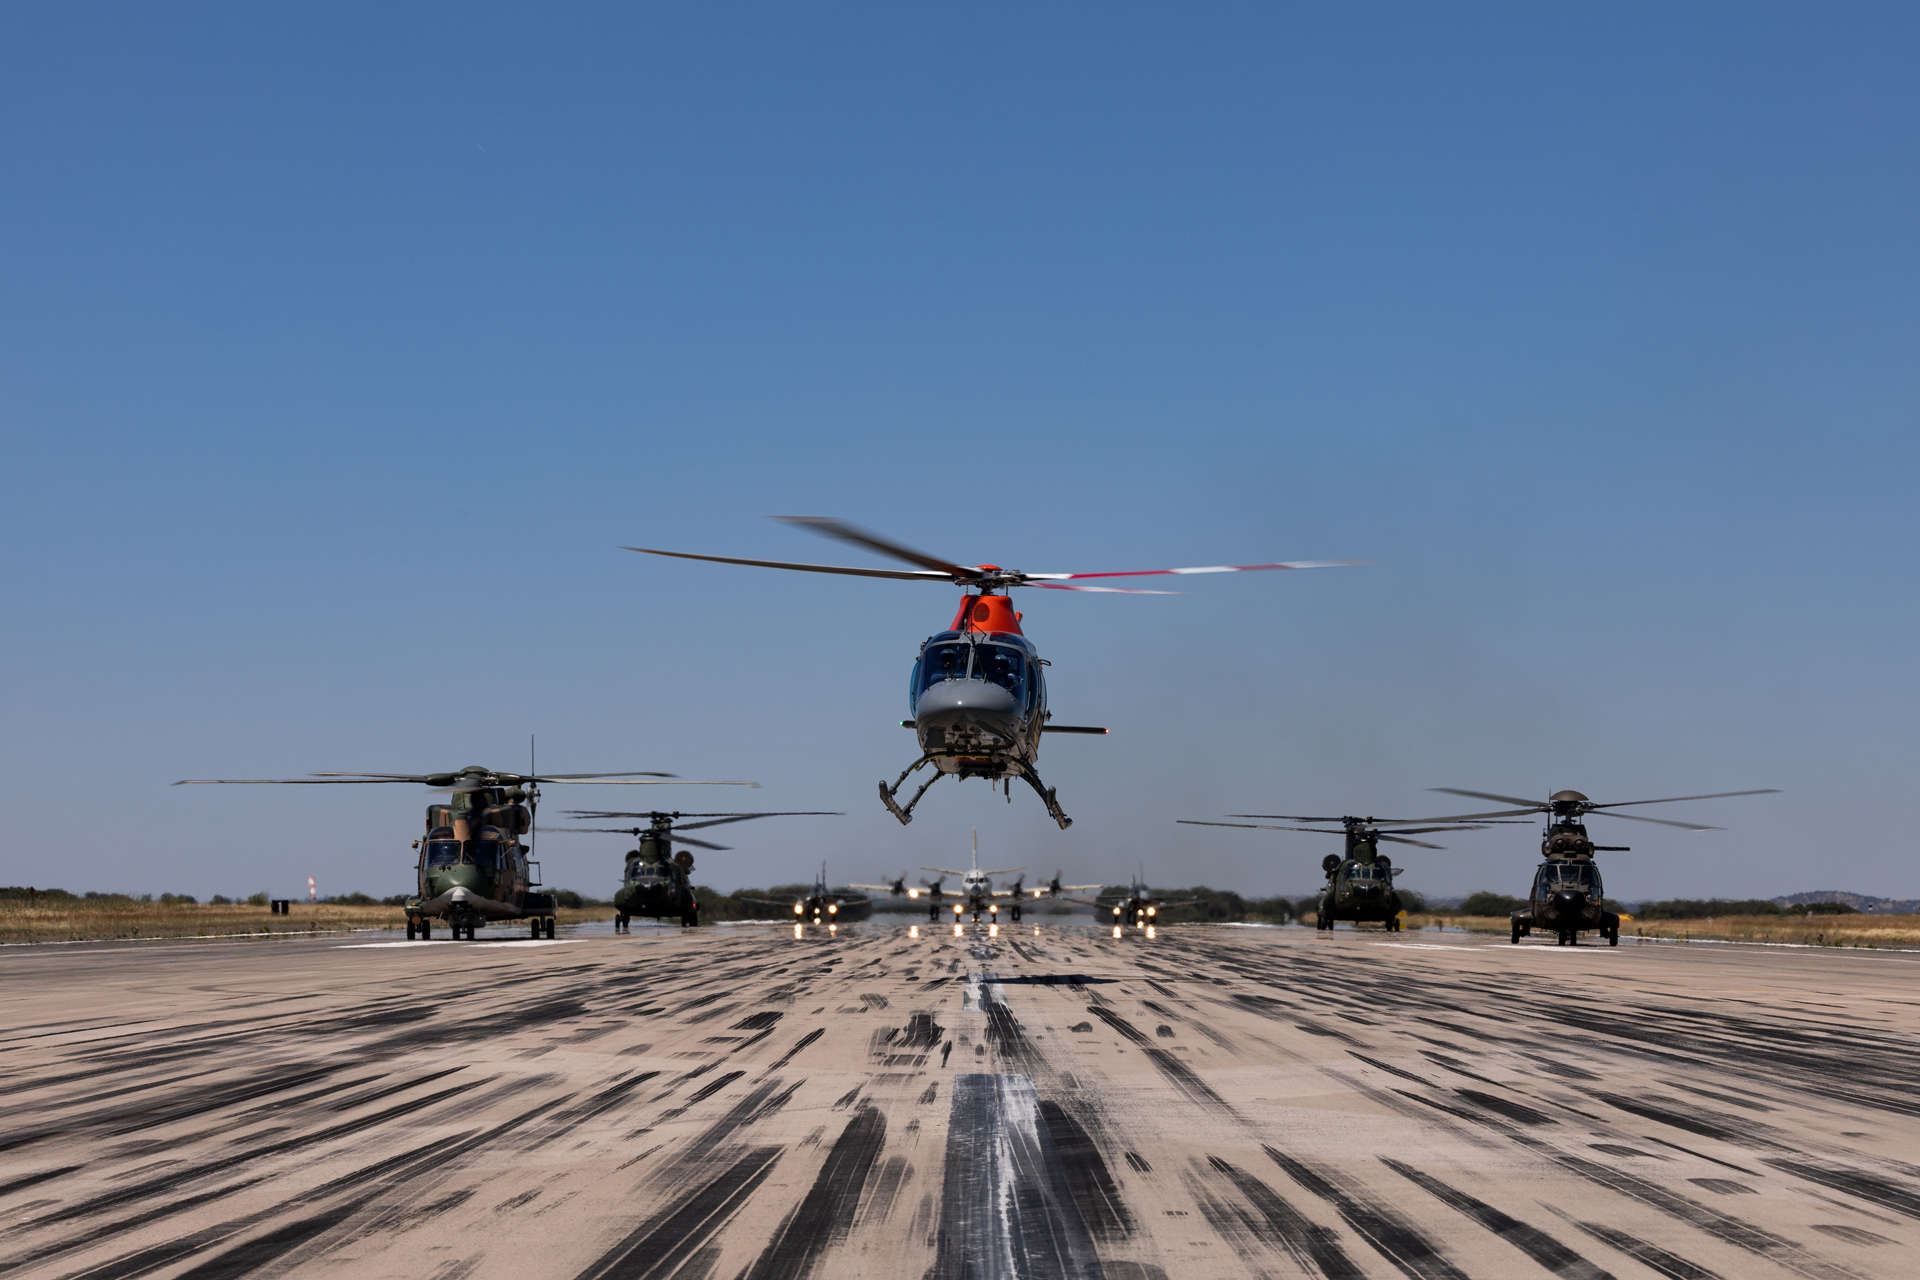 HOT BLADE 21 increased interoperability among helicopter crews